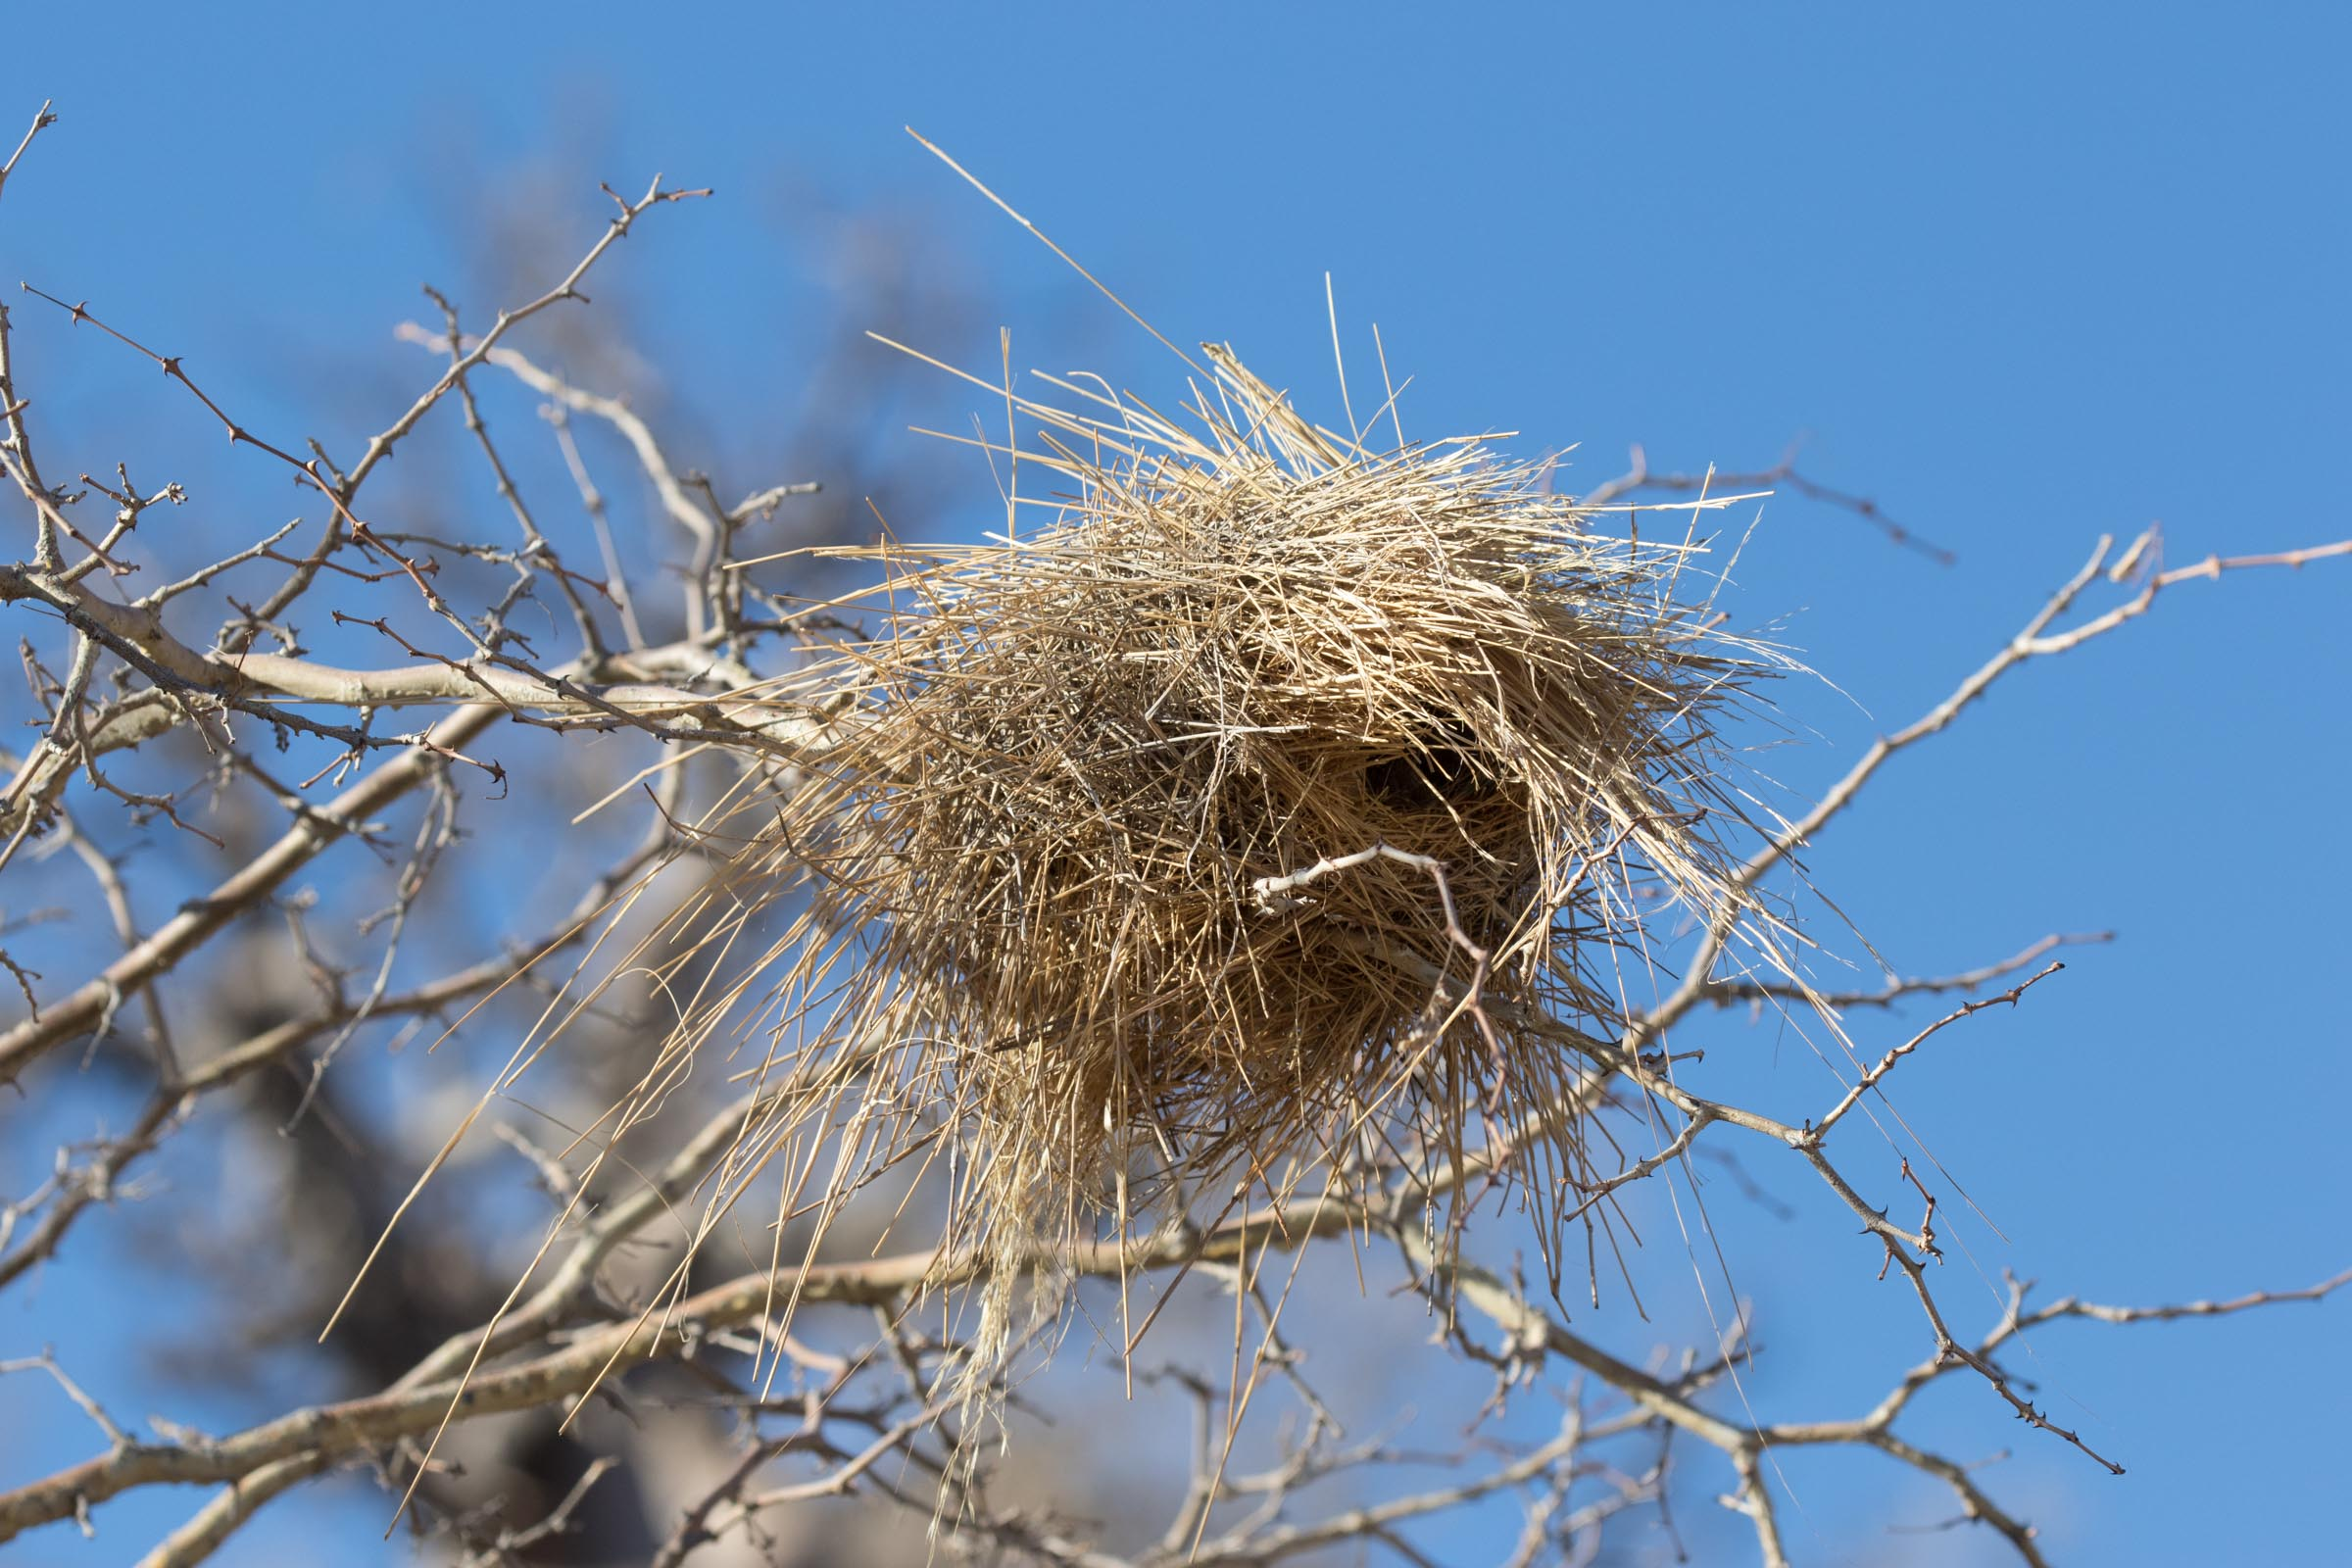 White-browed Sparrow Weaver nest